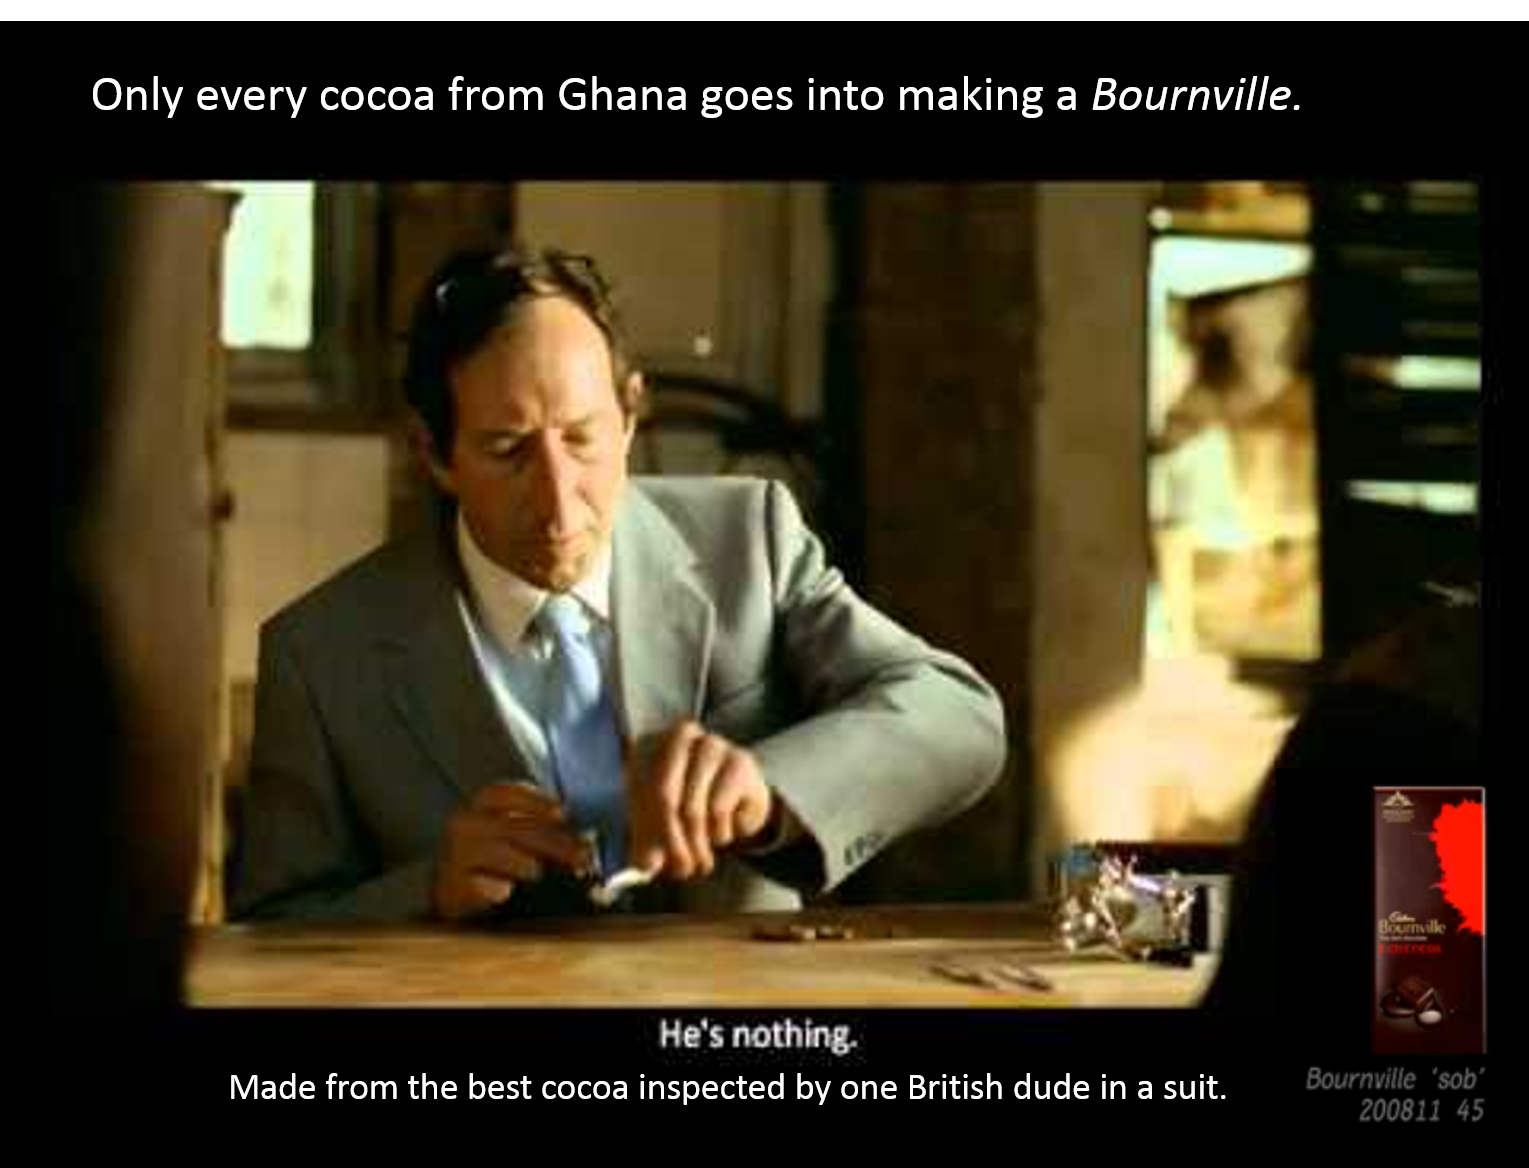 the ldquo sob rdquo story discovering the truth about chocolate advertising in order to combat this false portrayal this following advertisement was created to criticize this exaggeration the british man in the suit was the focus